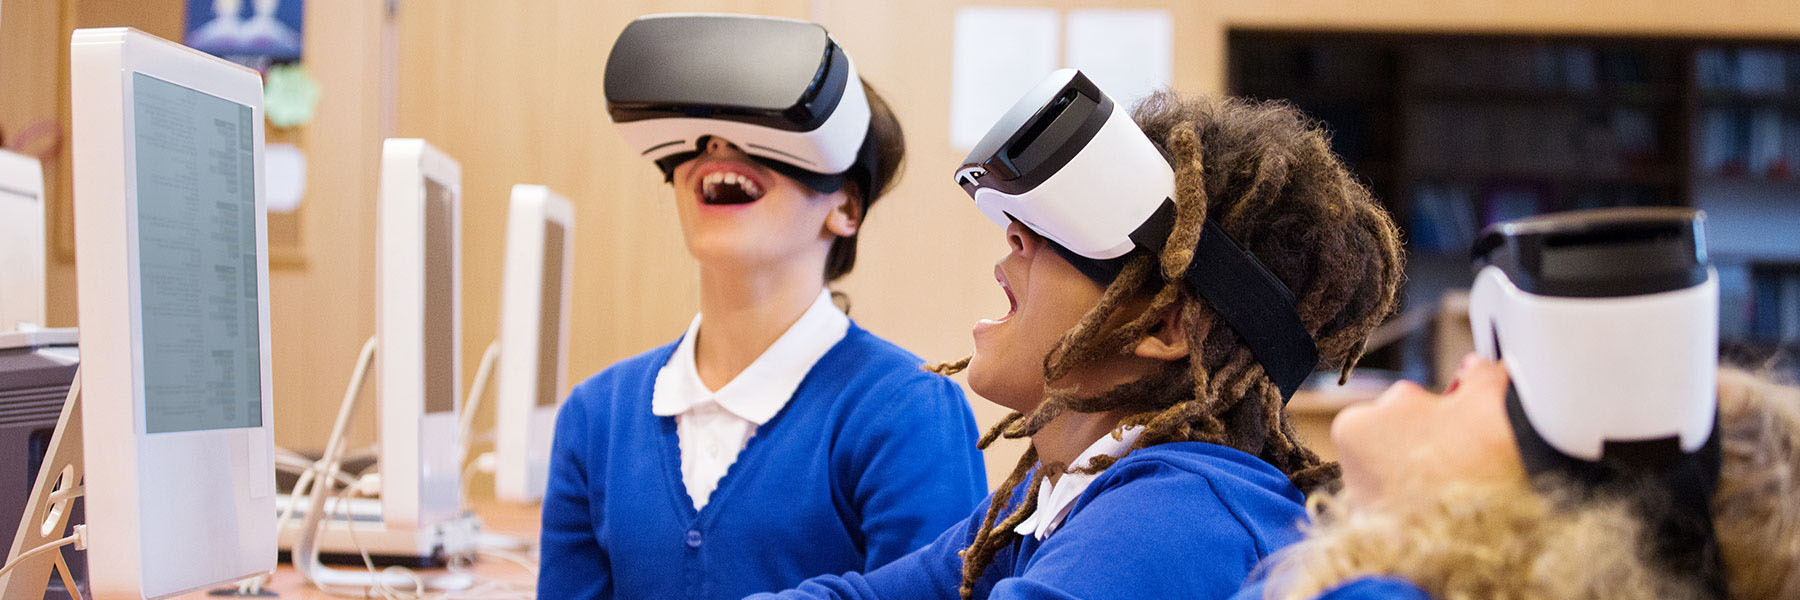 Kids playing with virtual reality headsets in a computer lab